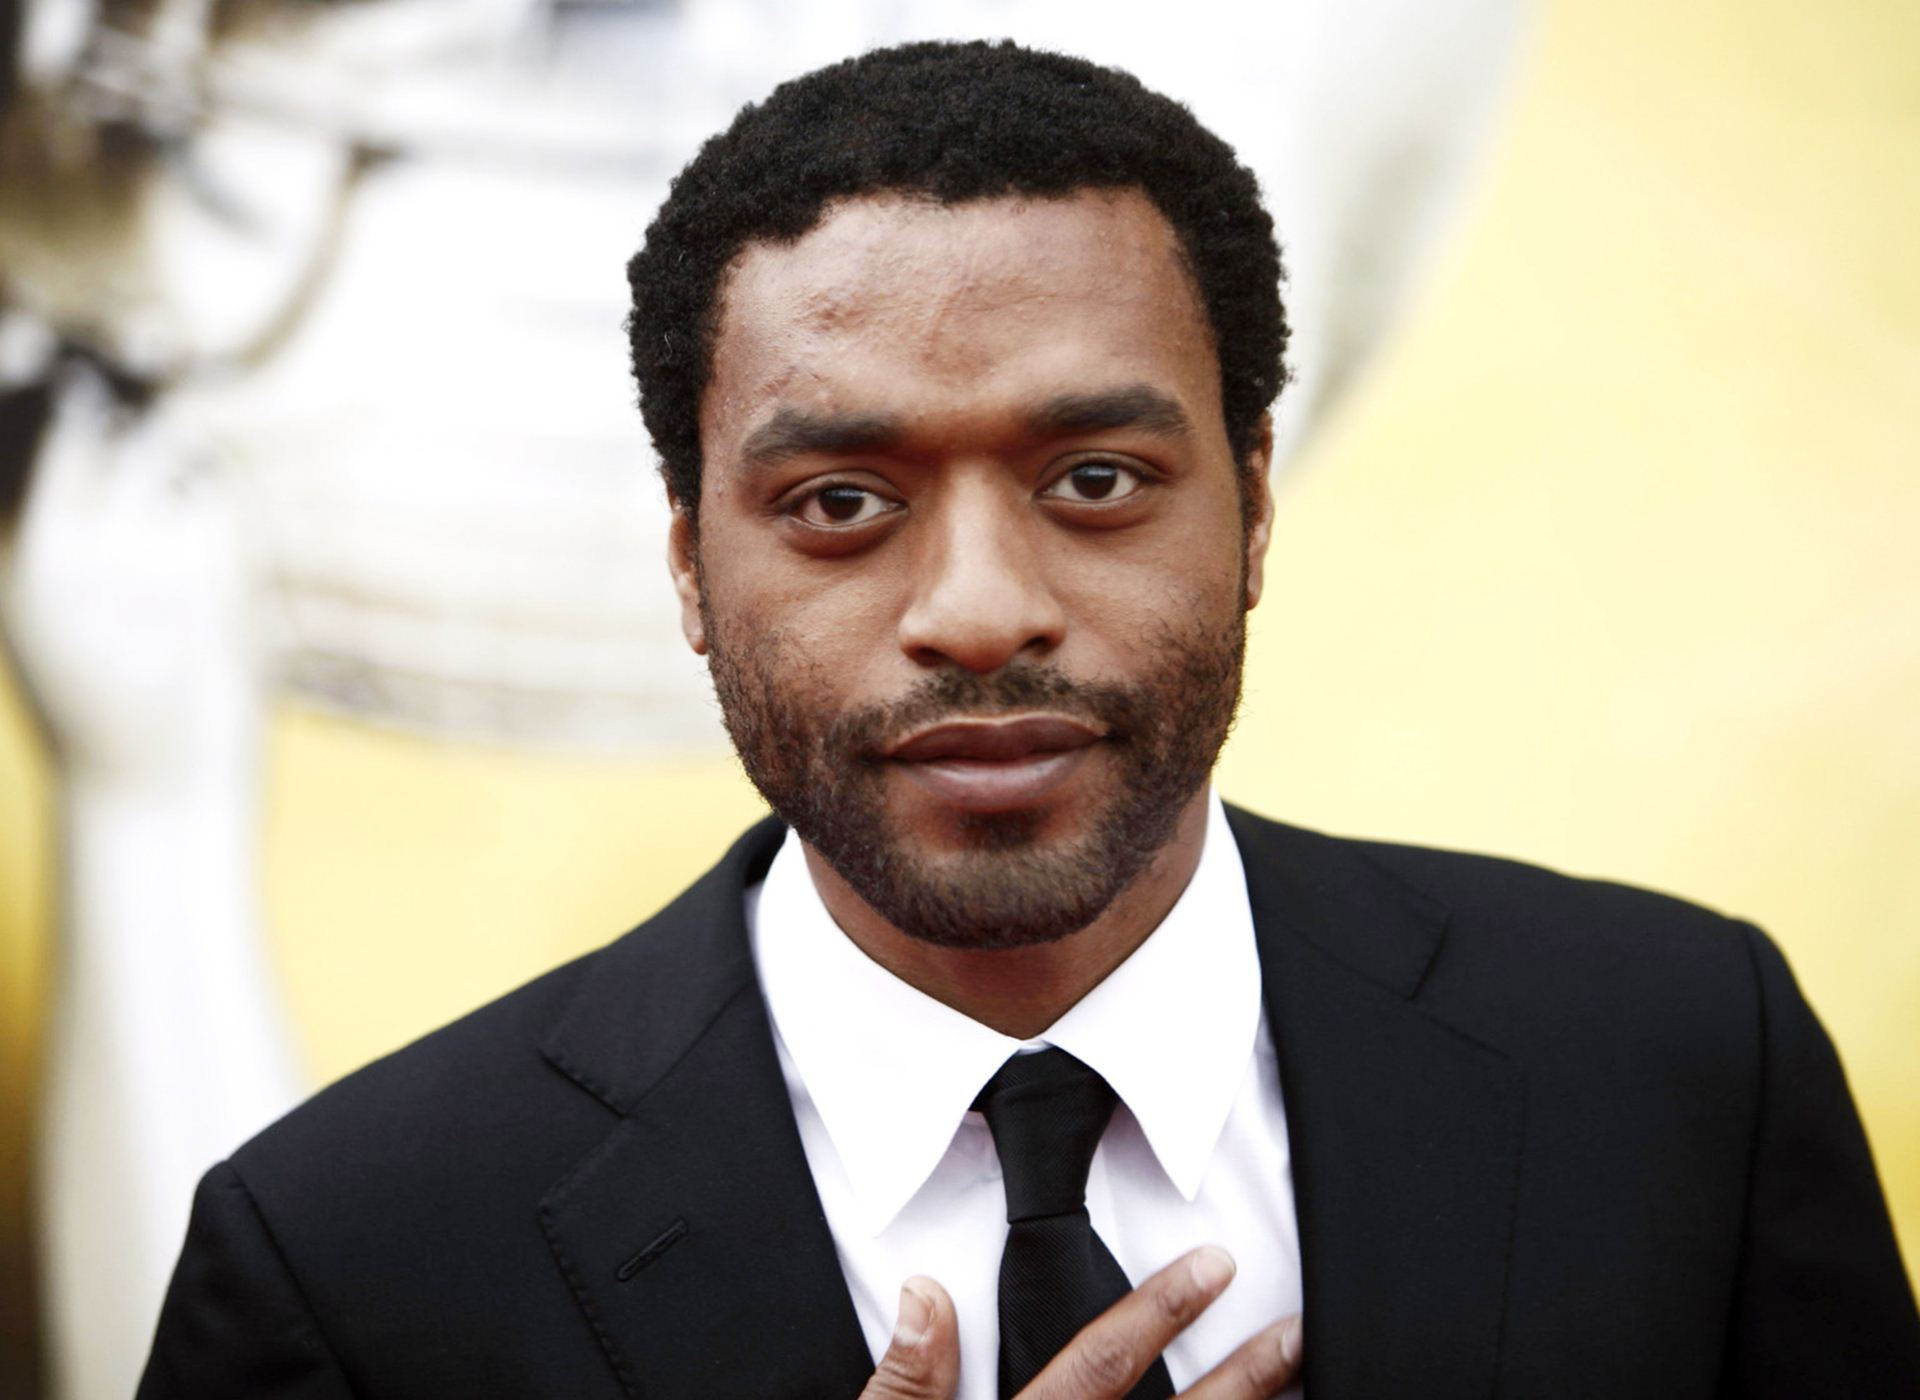 chiwetel ejiofor - photo #17